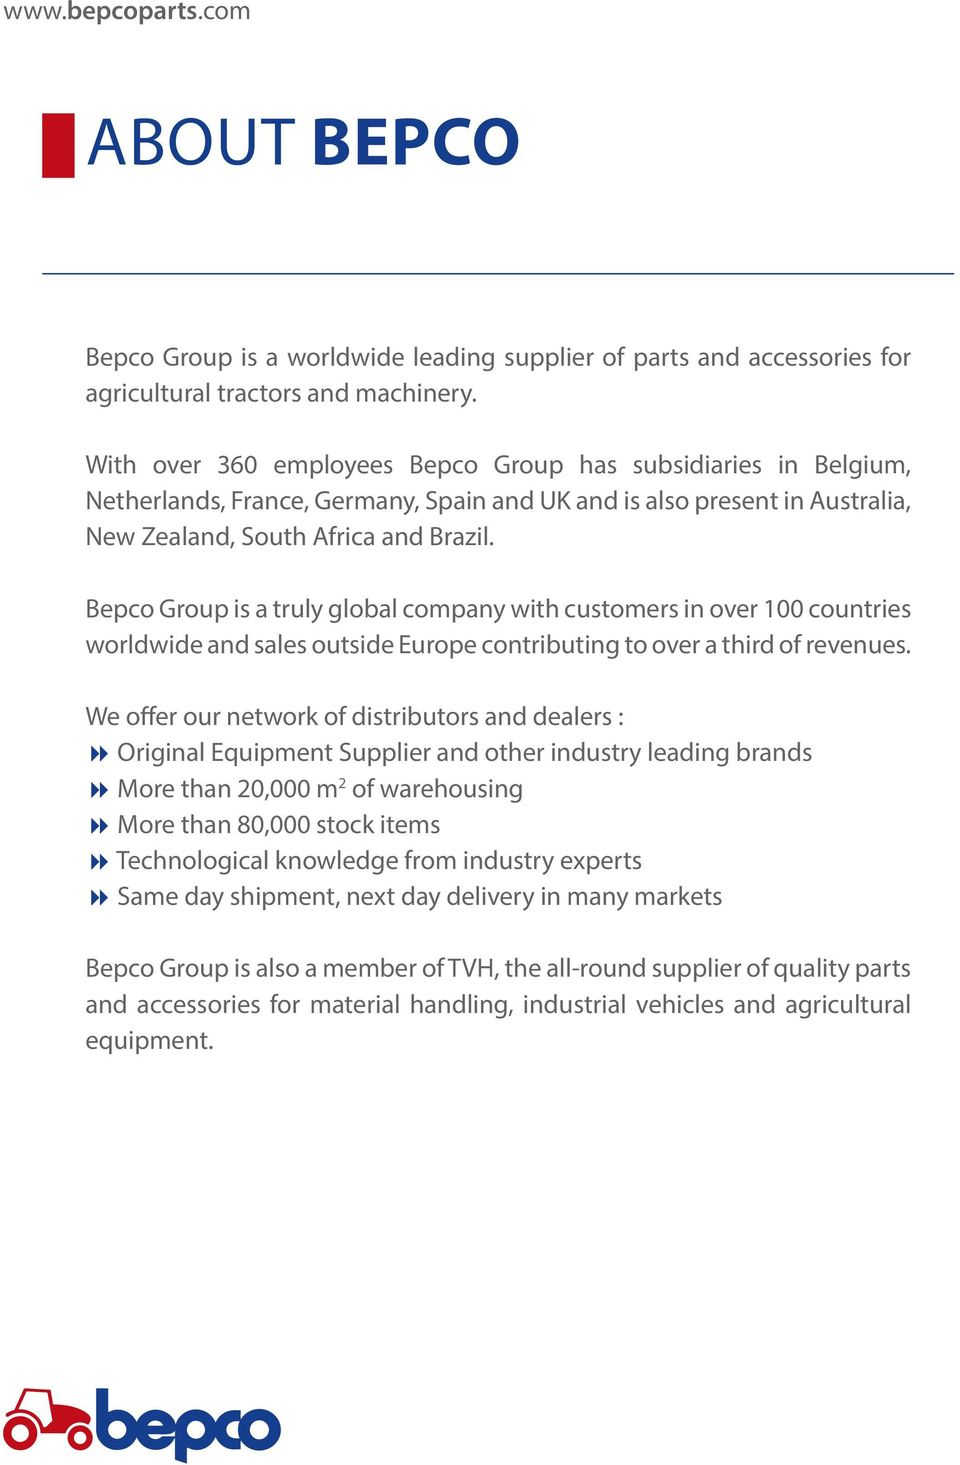 Bepco Group is a truly global company with customers in over 100 countries worldwide and sales outside Europe contributing to over a third of revenues.